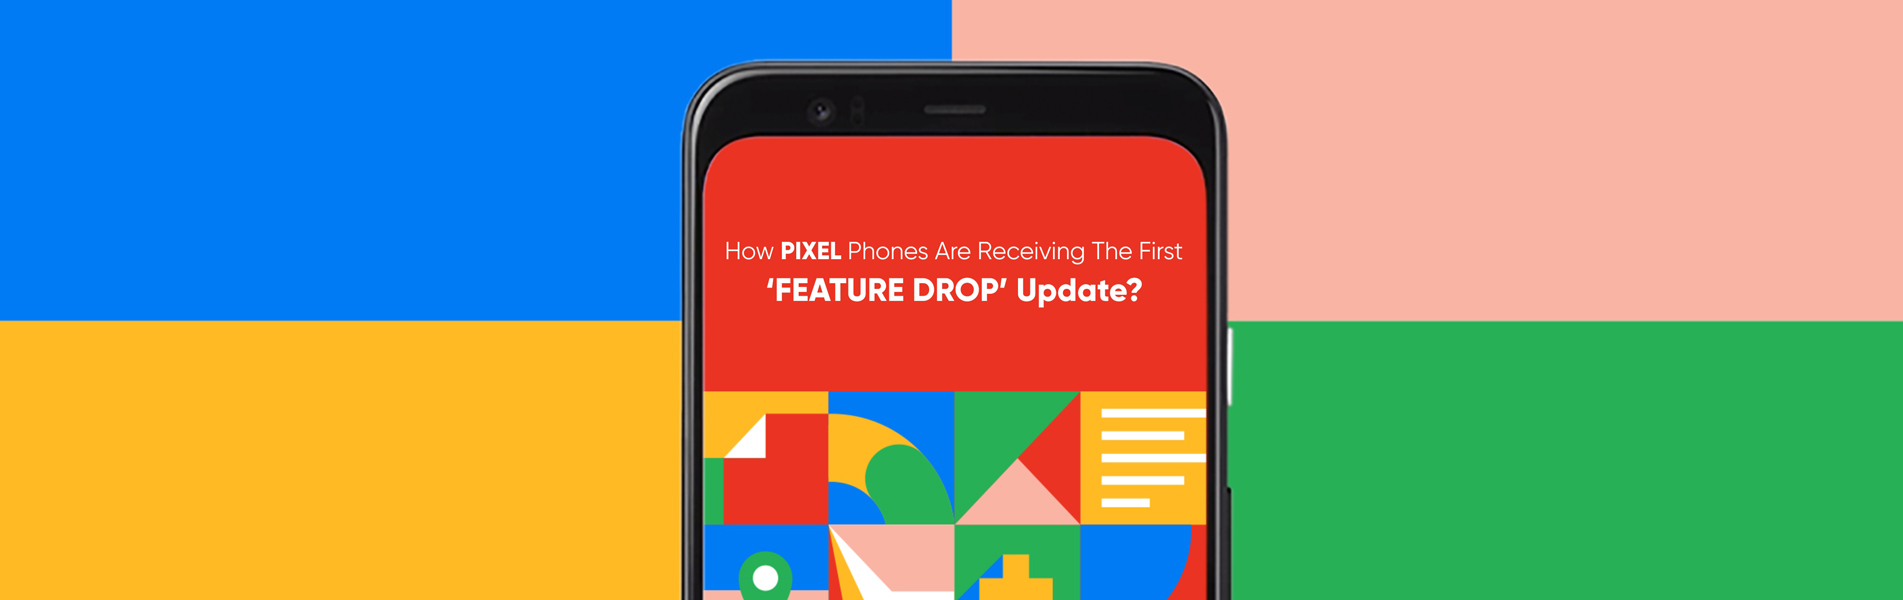 How PIXEL Phones Are Receiving The First Feature Drop Update